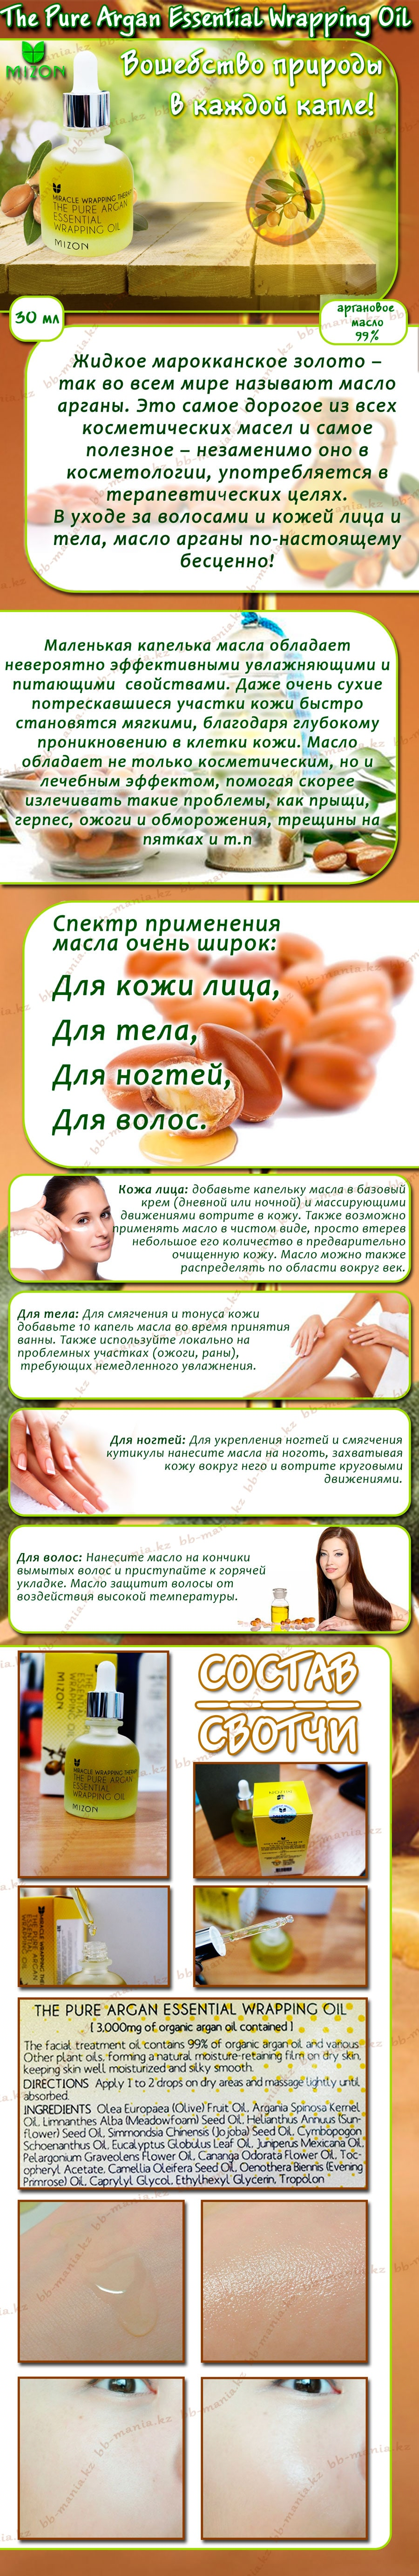 The-Pure-Argan-Essential-Wrapping-Oil-min